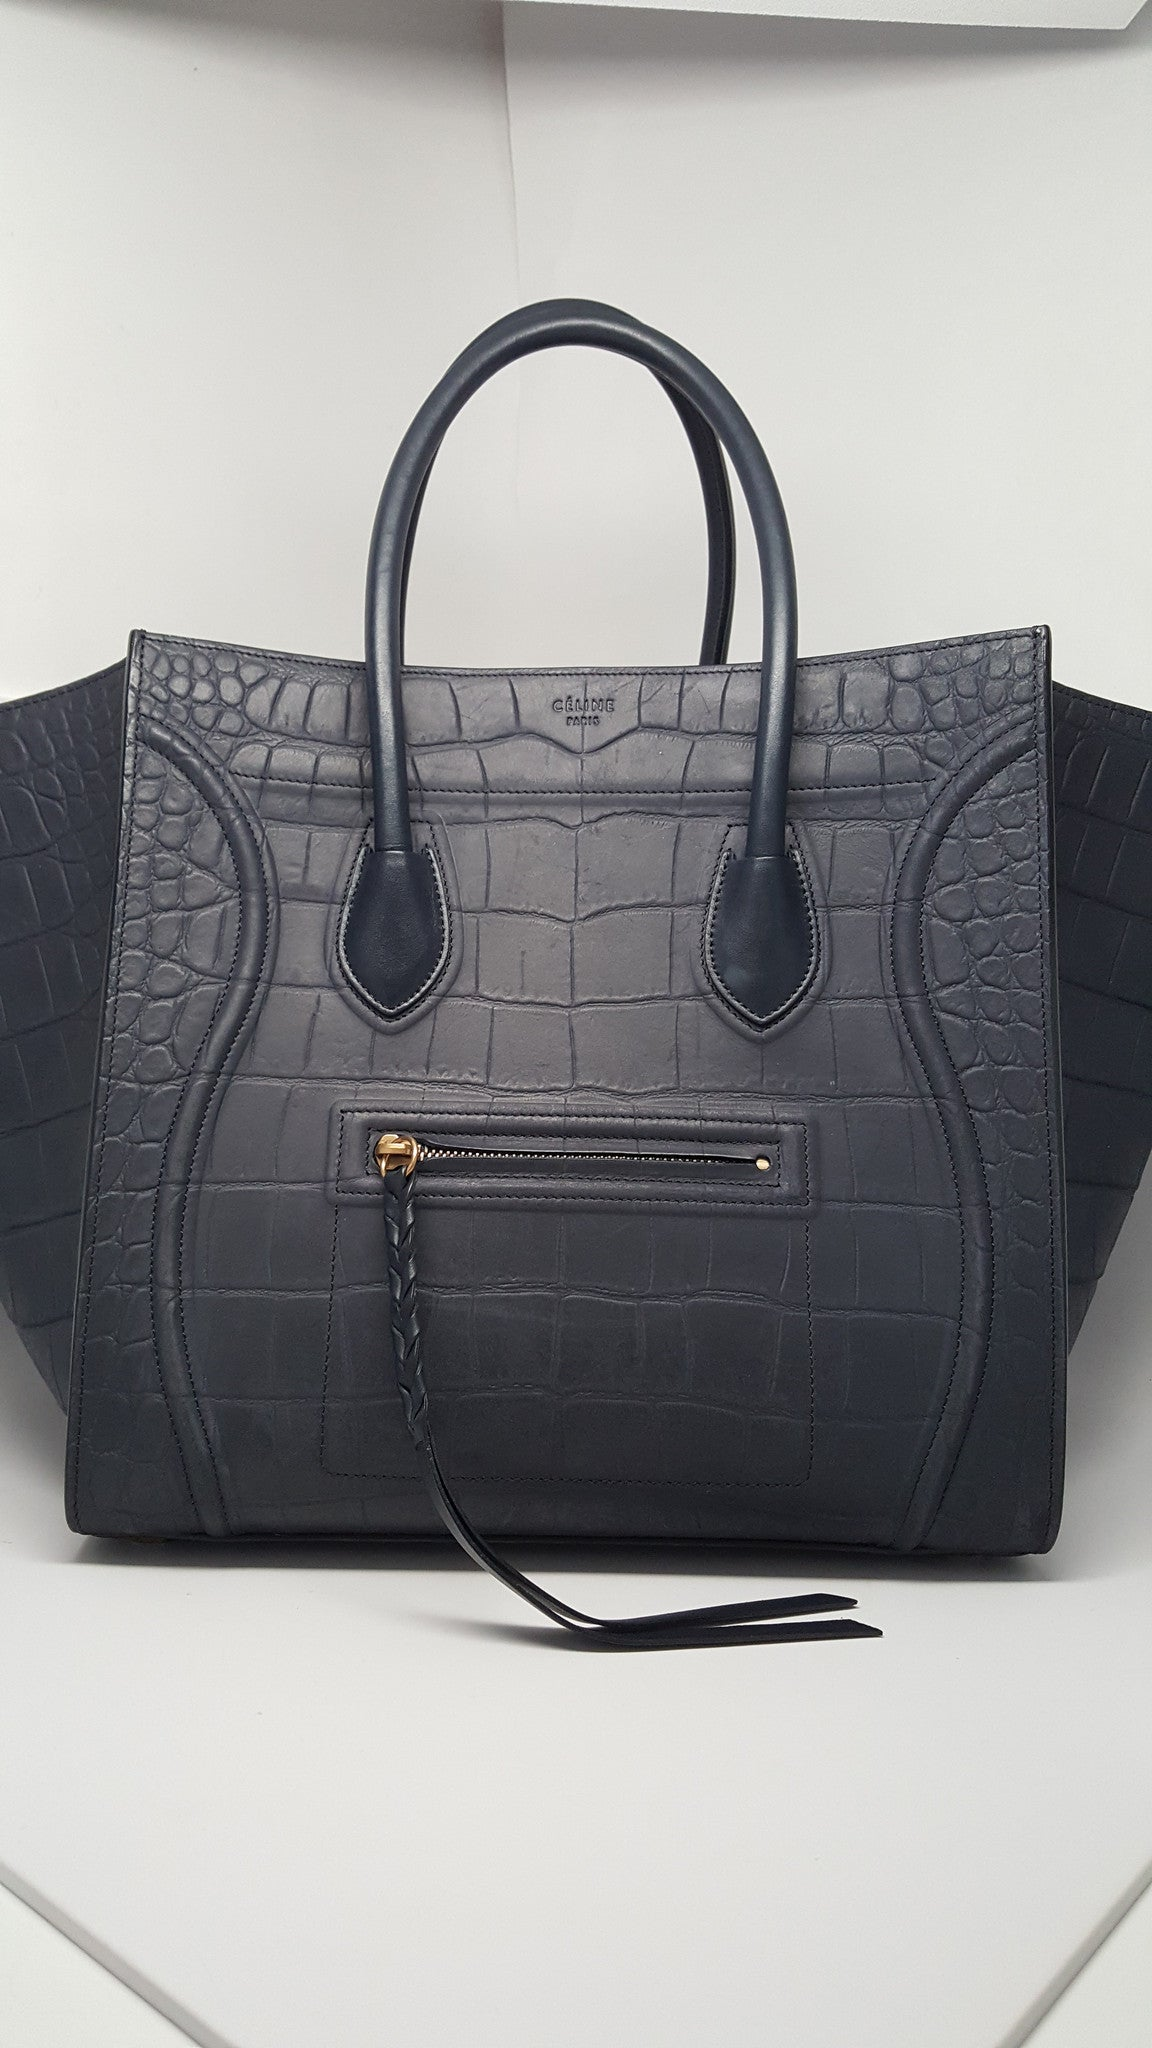 CELINE NAVY BLUE STAMPED CROC MEDIUM LUGGAGE PHANTOM BAG